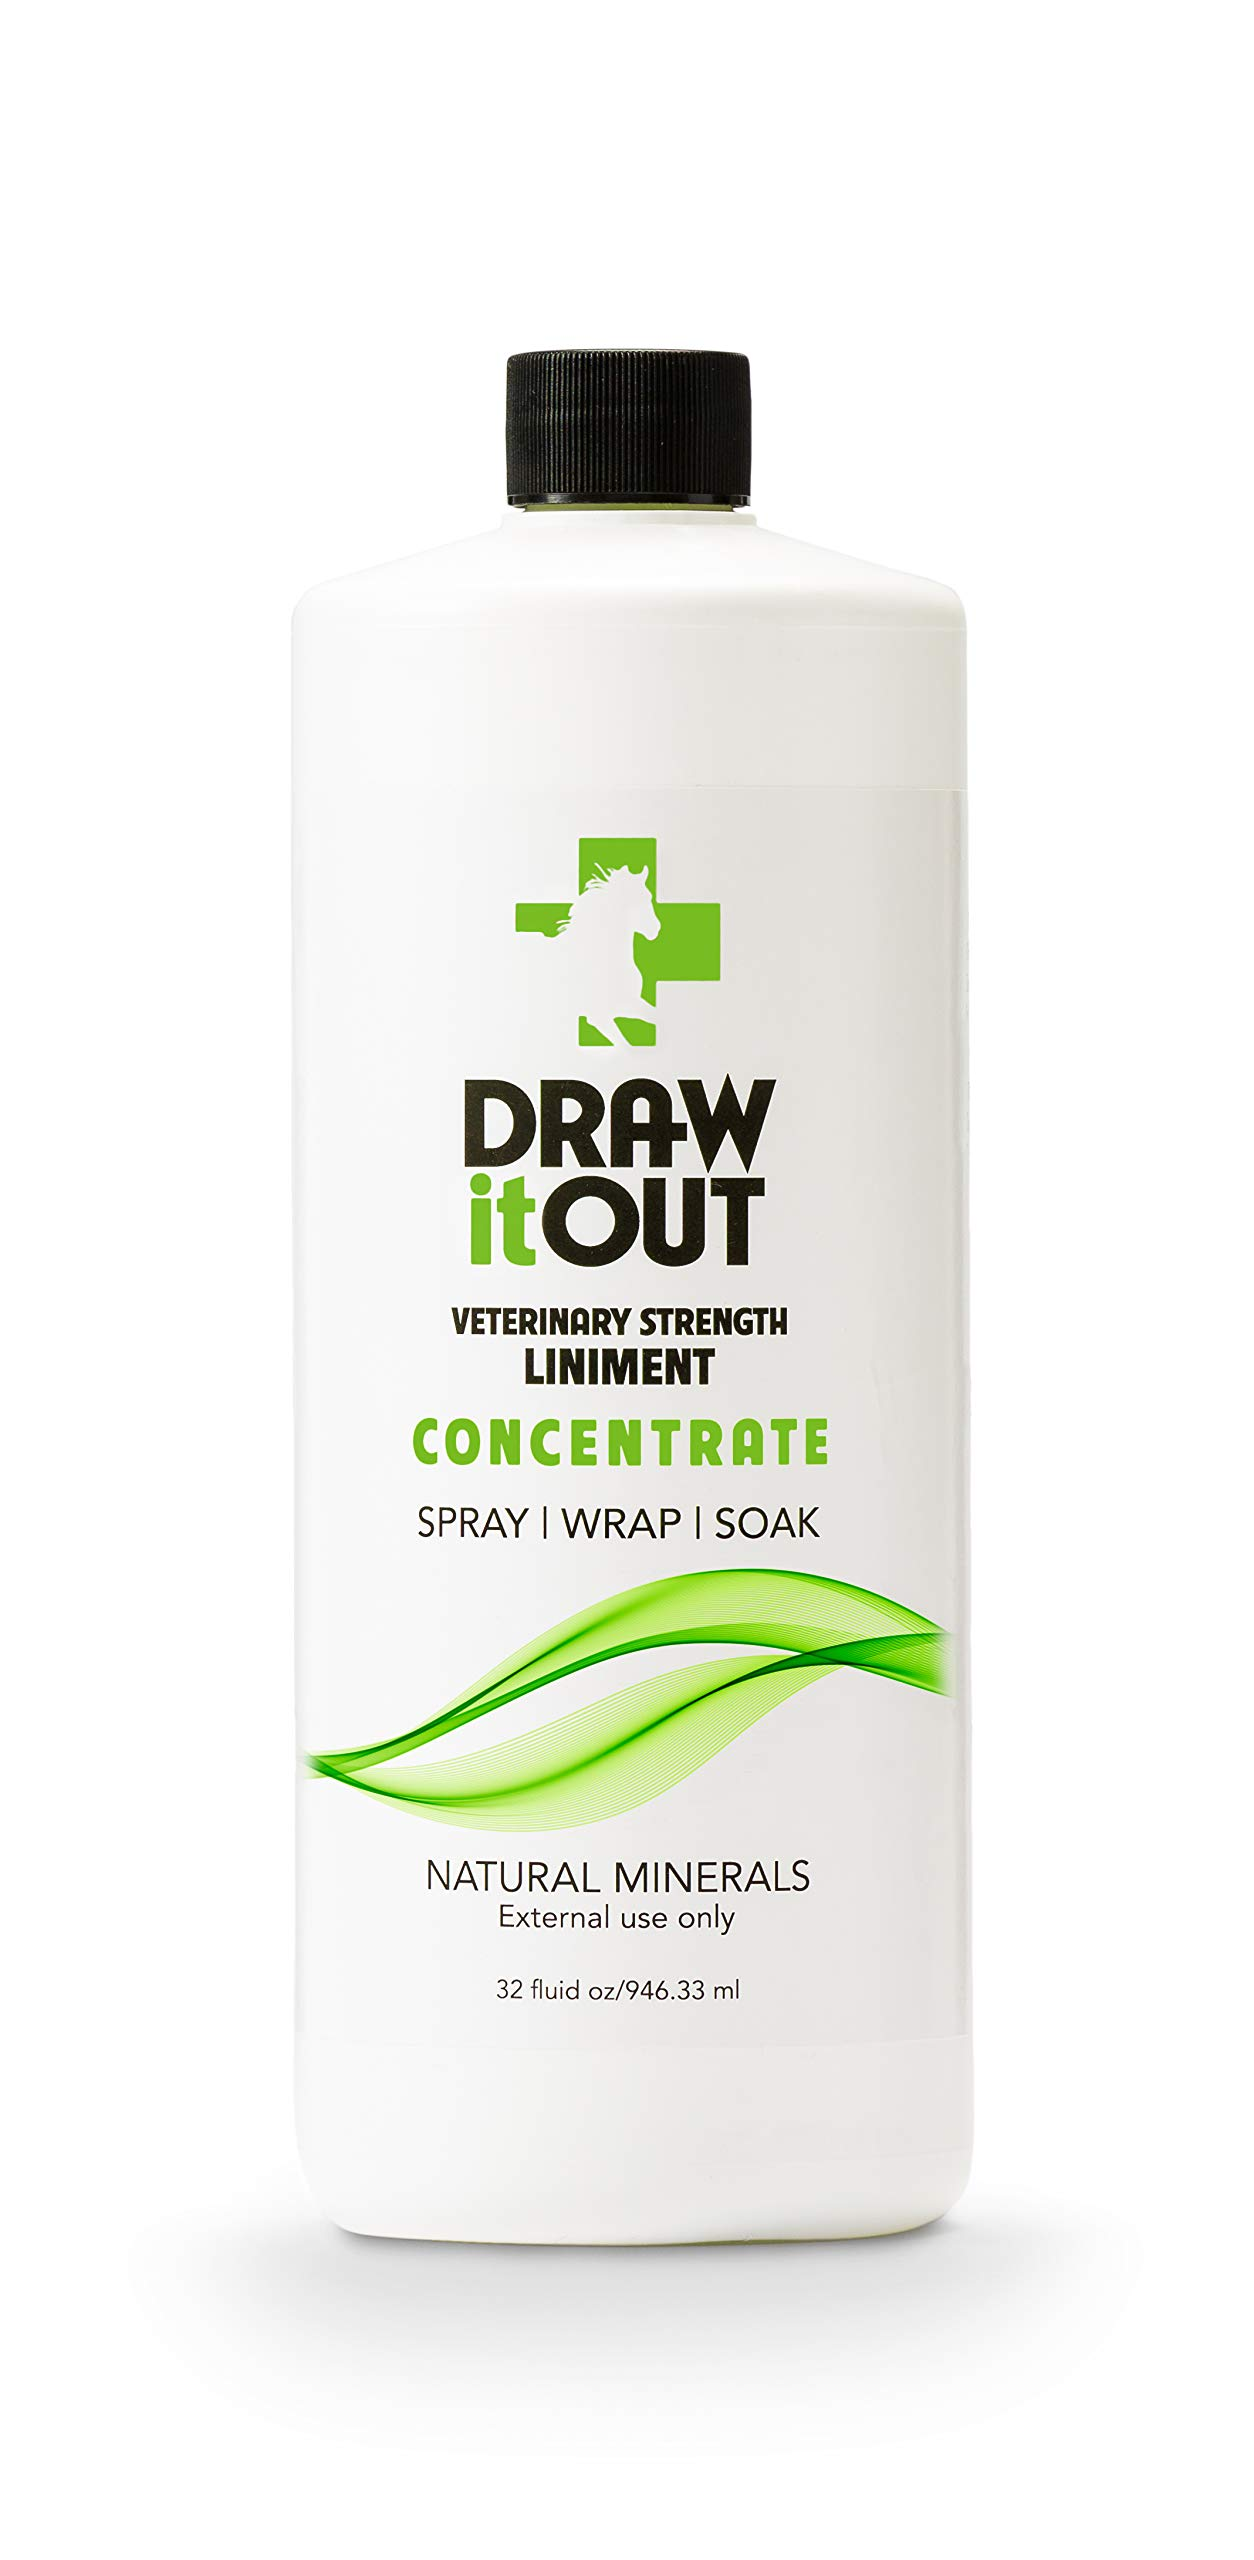 Draw It Out Veterinary Strength Liniment